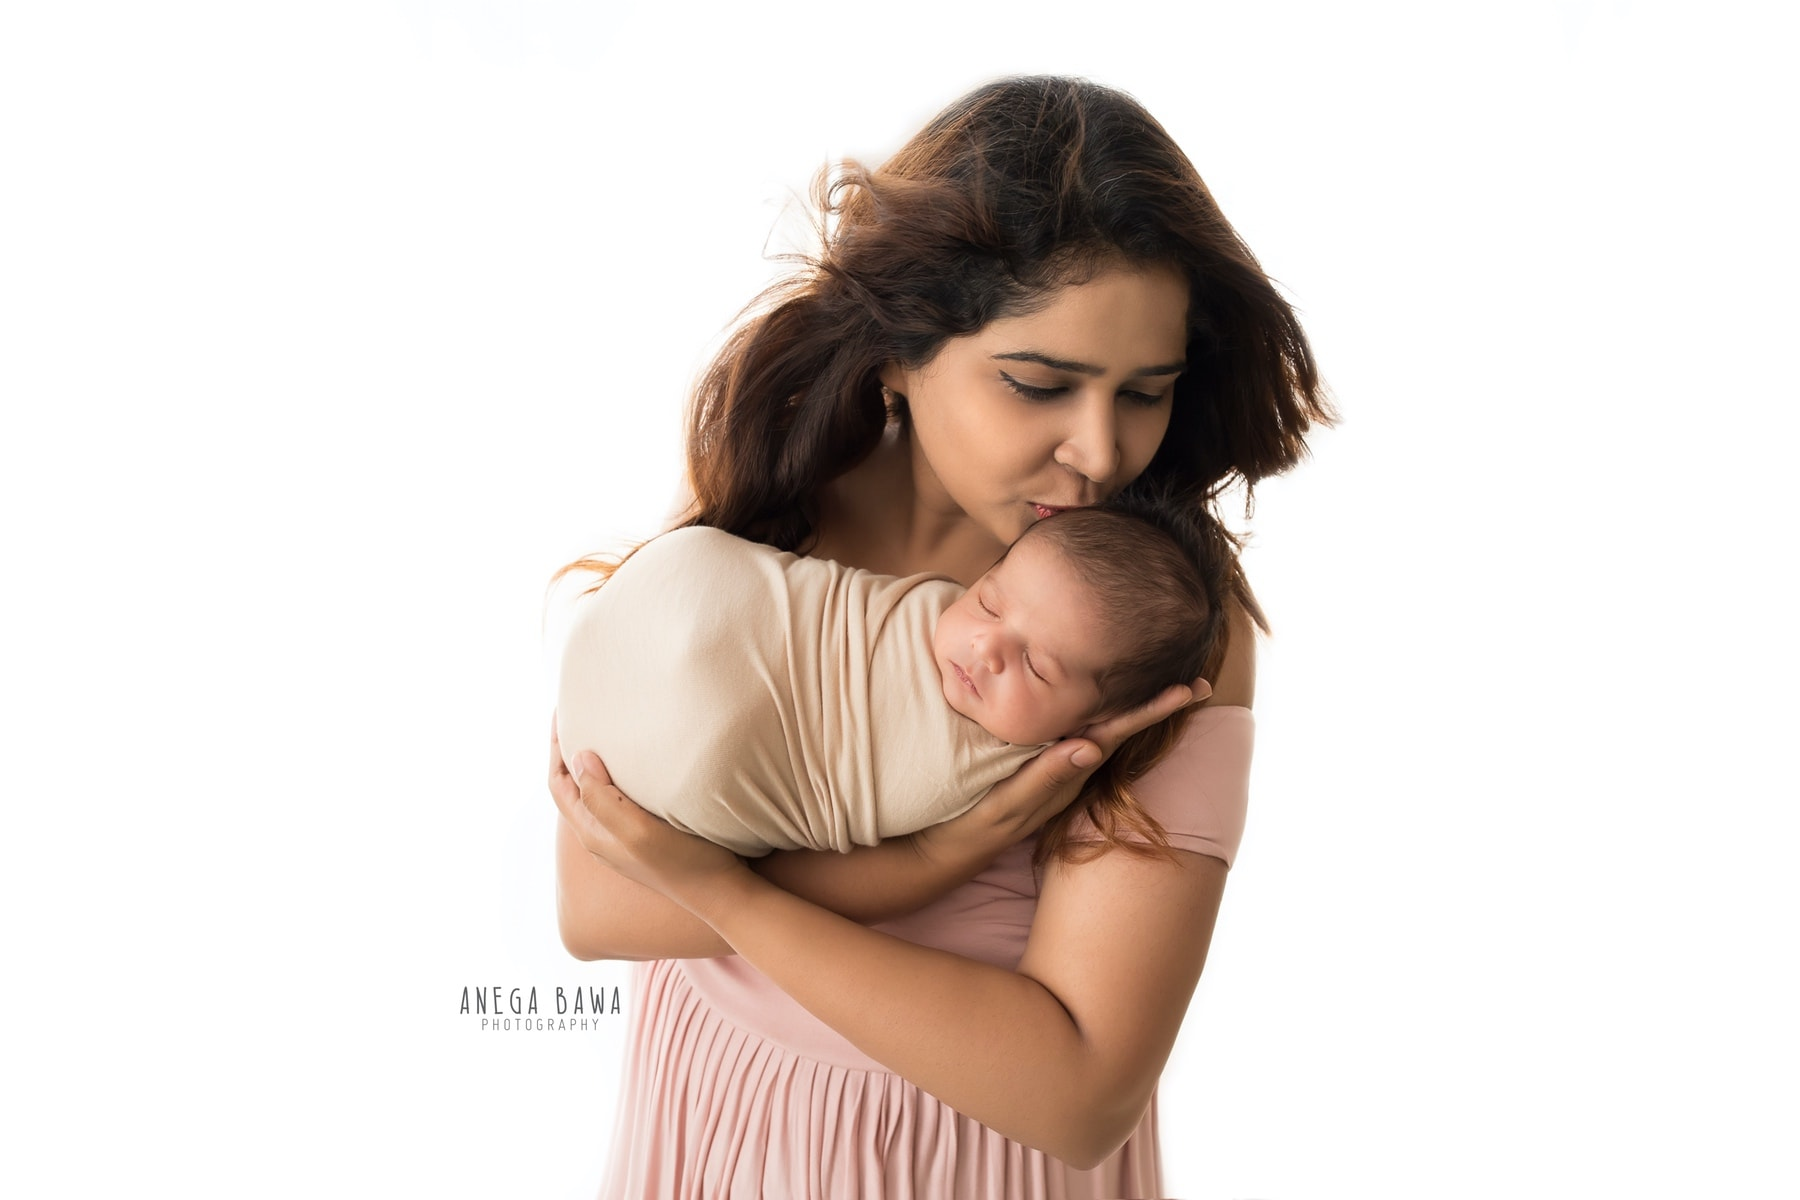 white mother and baby photography delhi 18 days newborn photoshoot gurgaon anega bawa